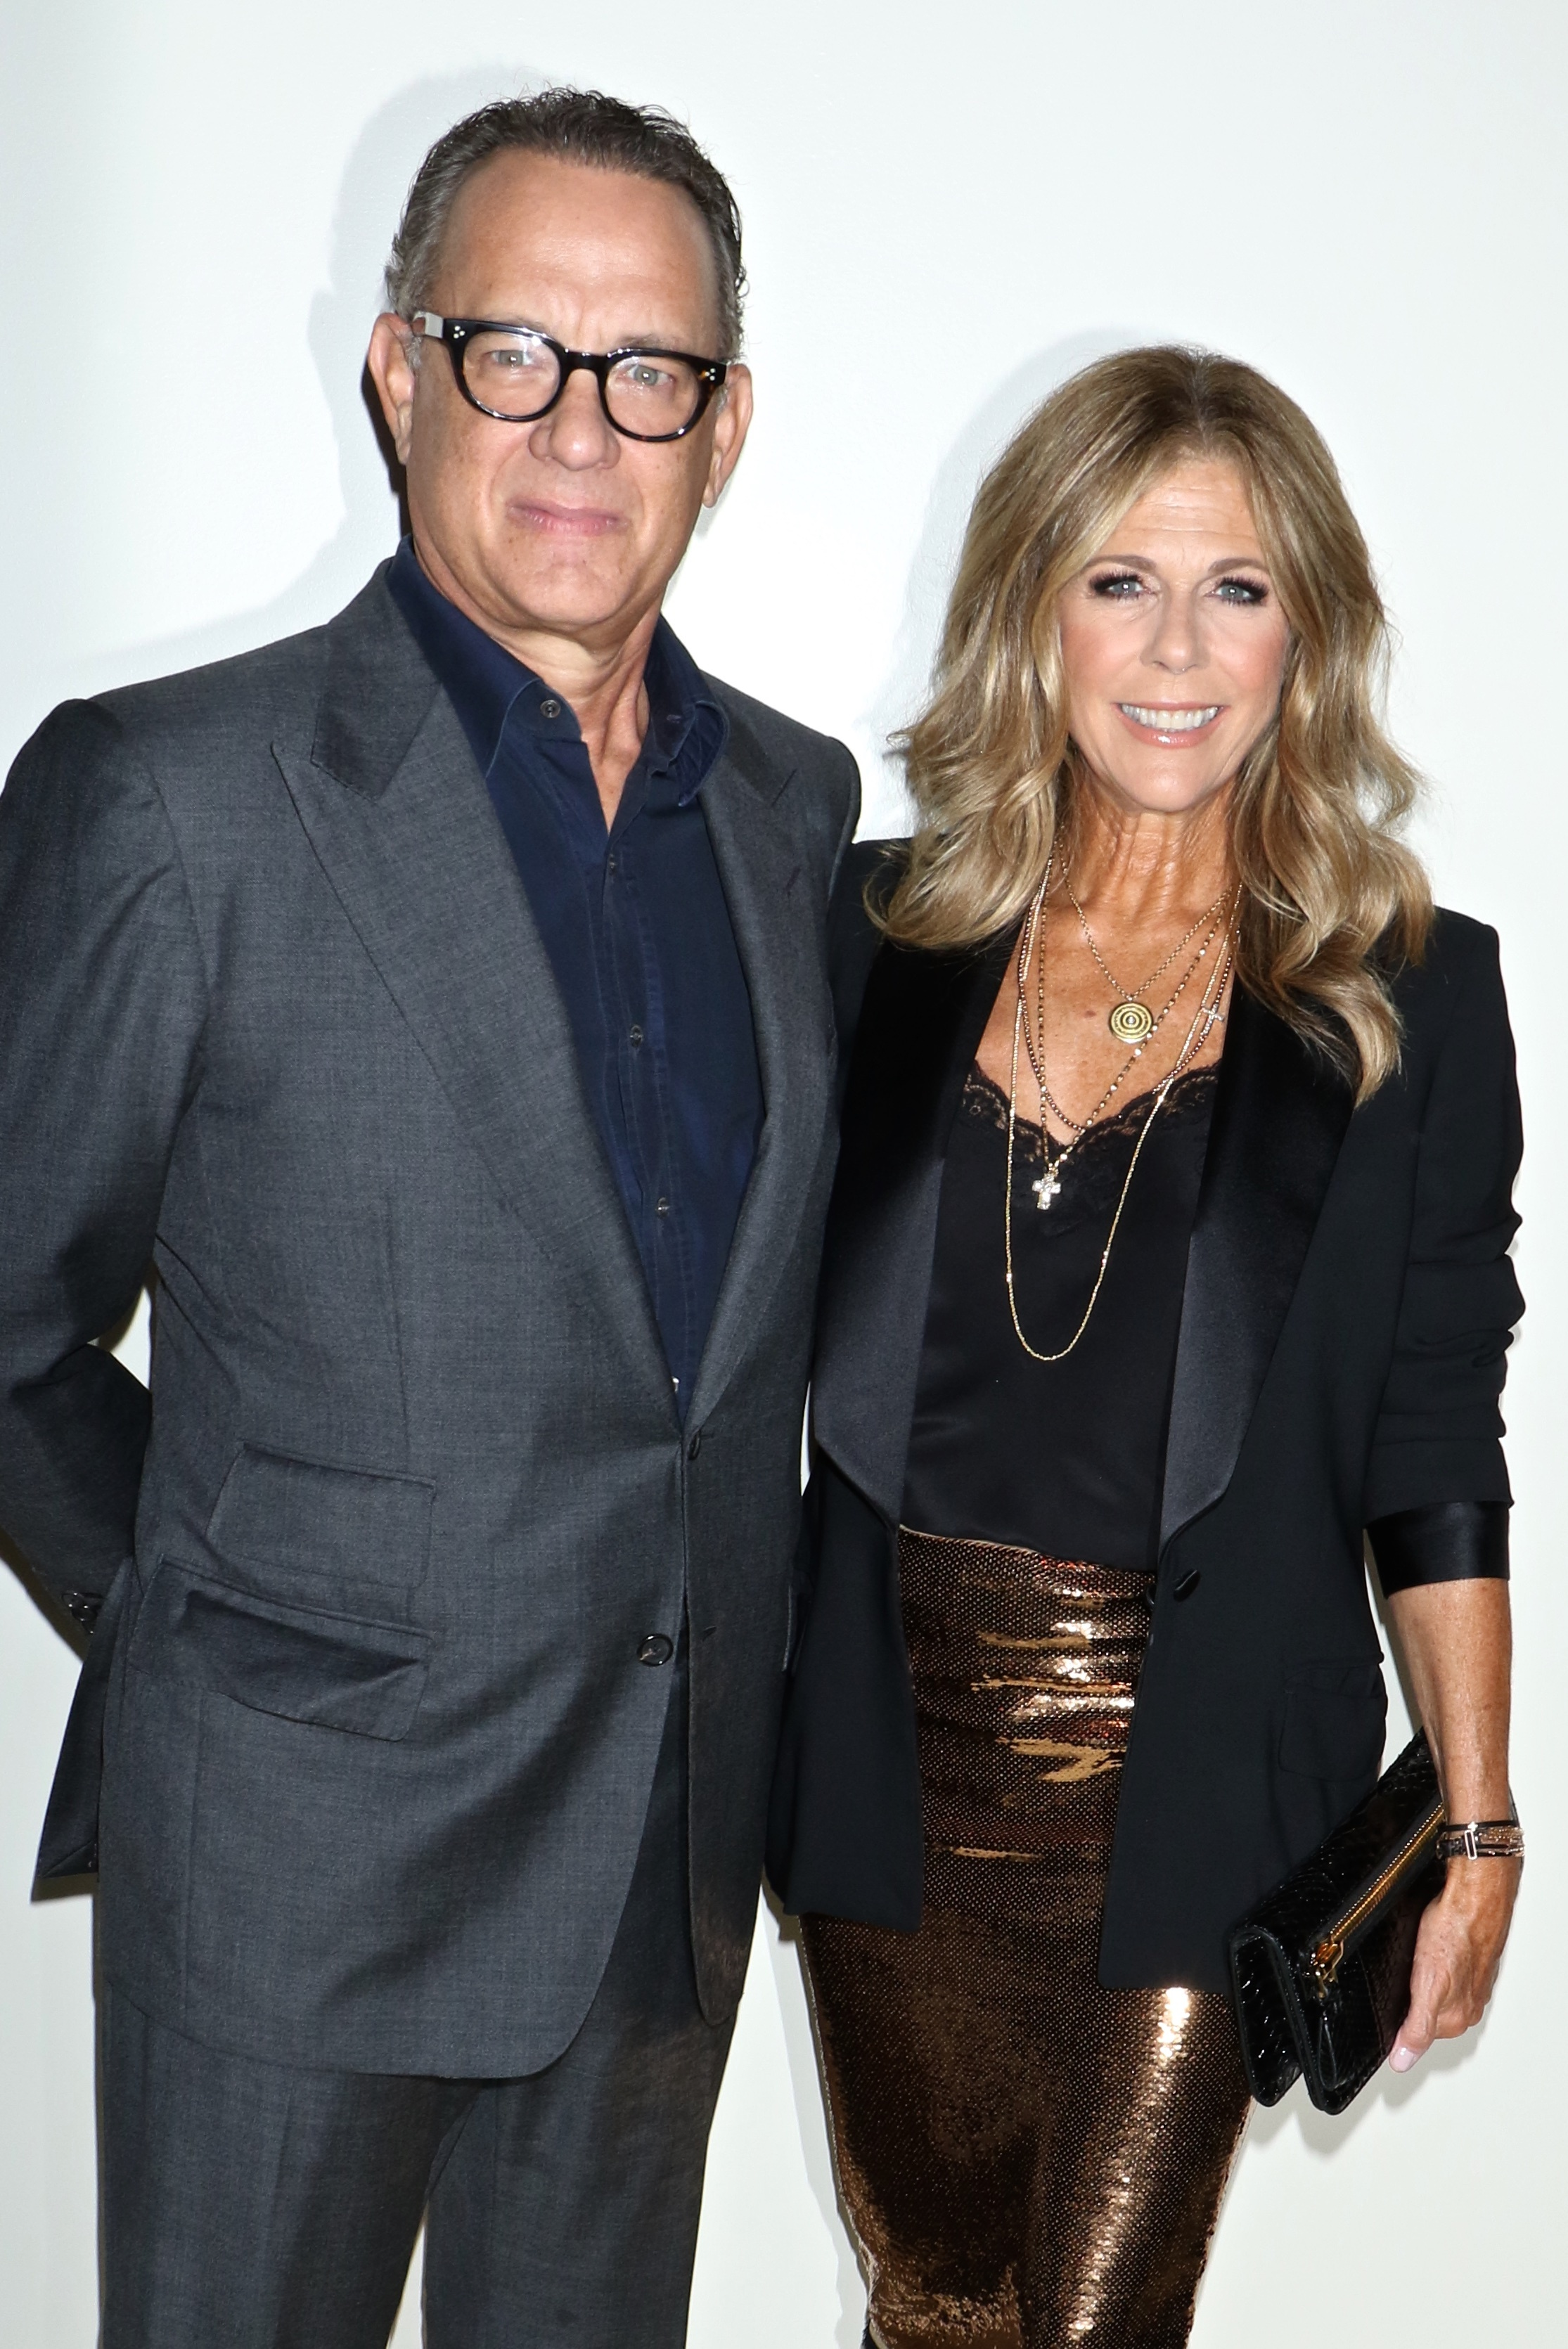 Tom Hanks and Rita Wilson attend the Tom Ford show for Spring/Summer 2019 at New York Fashion Week on Sept. 5, 2018.